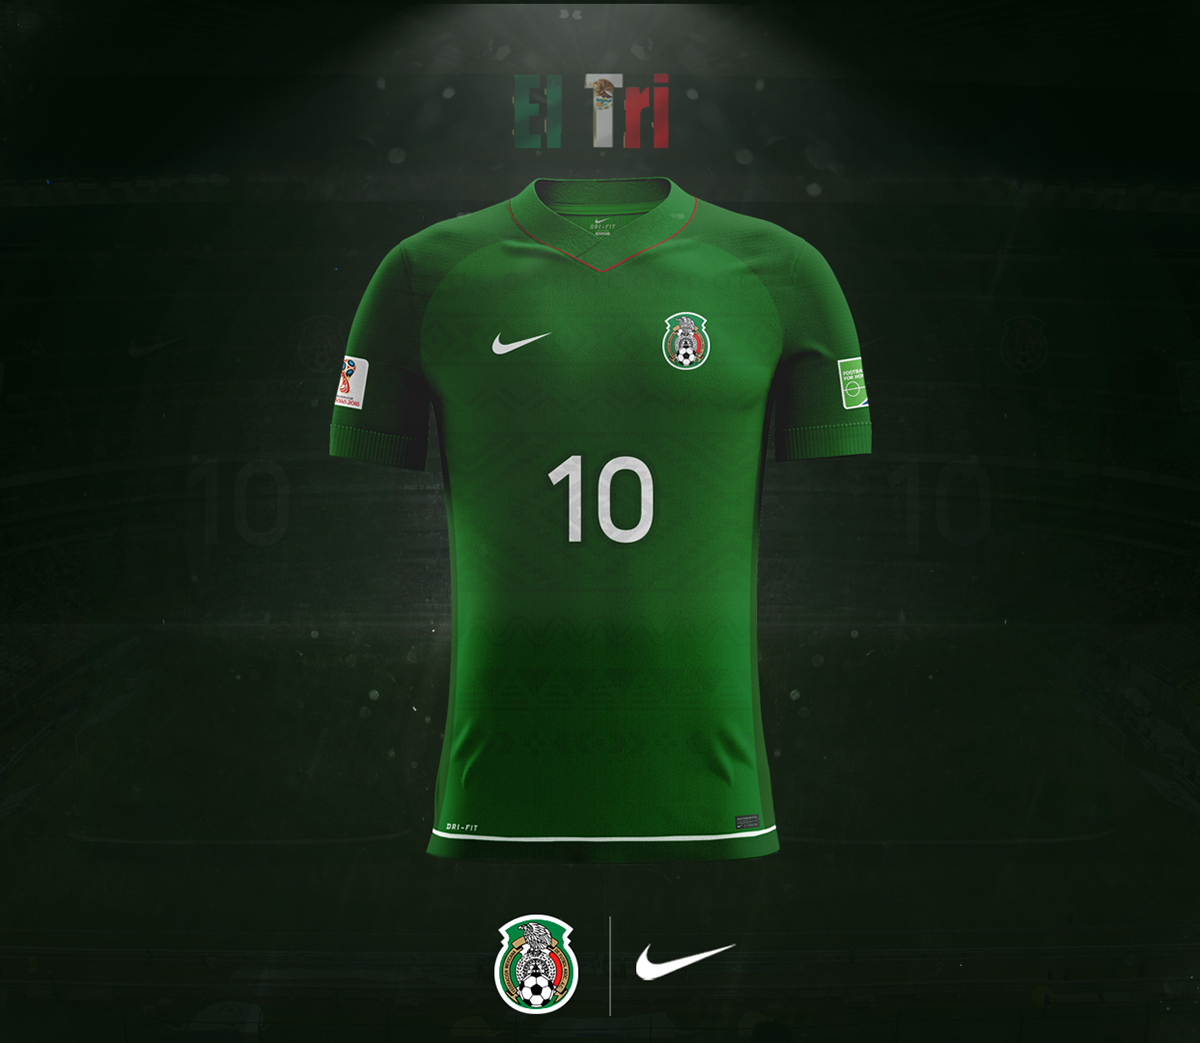 51d2e2db8 Mexico Home Kit Nike Concept on Behance